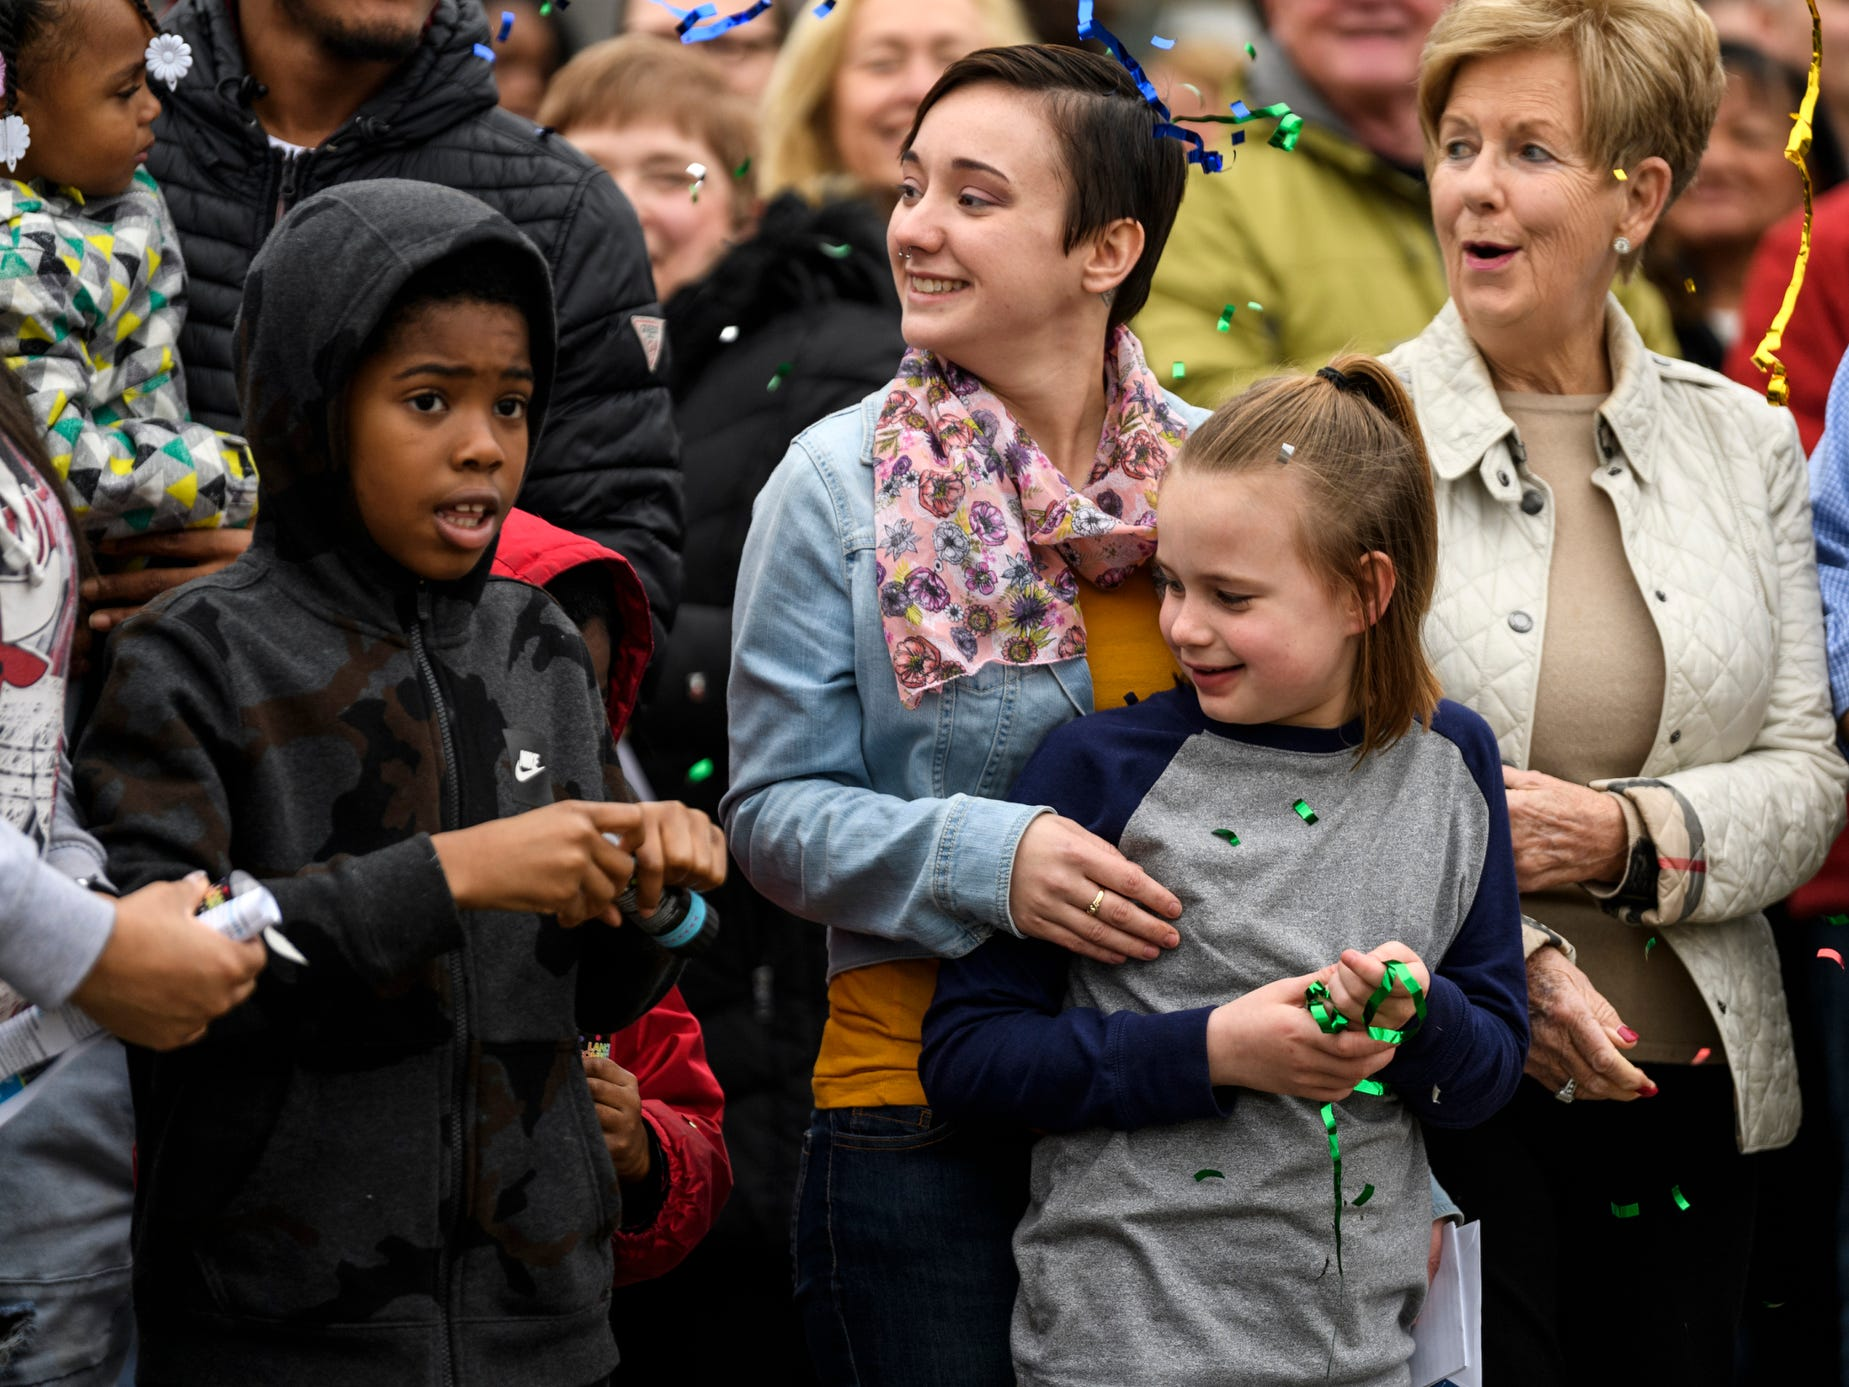 Leslie Blackwell, top center, and her niece Bailie Douthitt, 10, bottom center, react to confetti poppers busting around them during the 500th Habitat for Humanity home dedication ceremony on Bedford Avenue in Evansville, Ind., Thursday, Dec. 20, 2018.